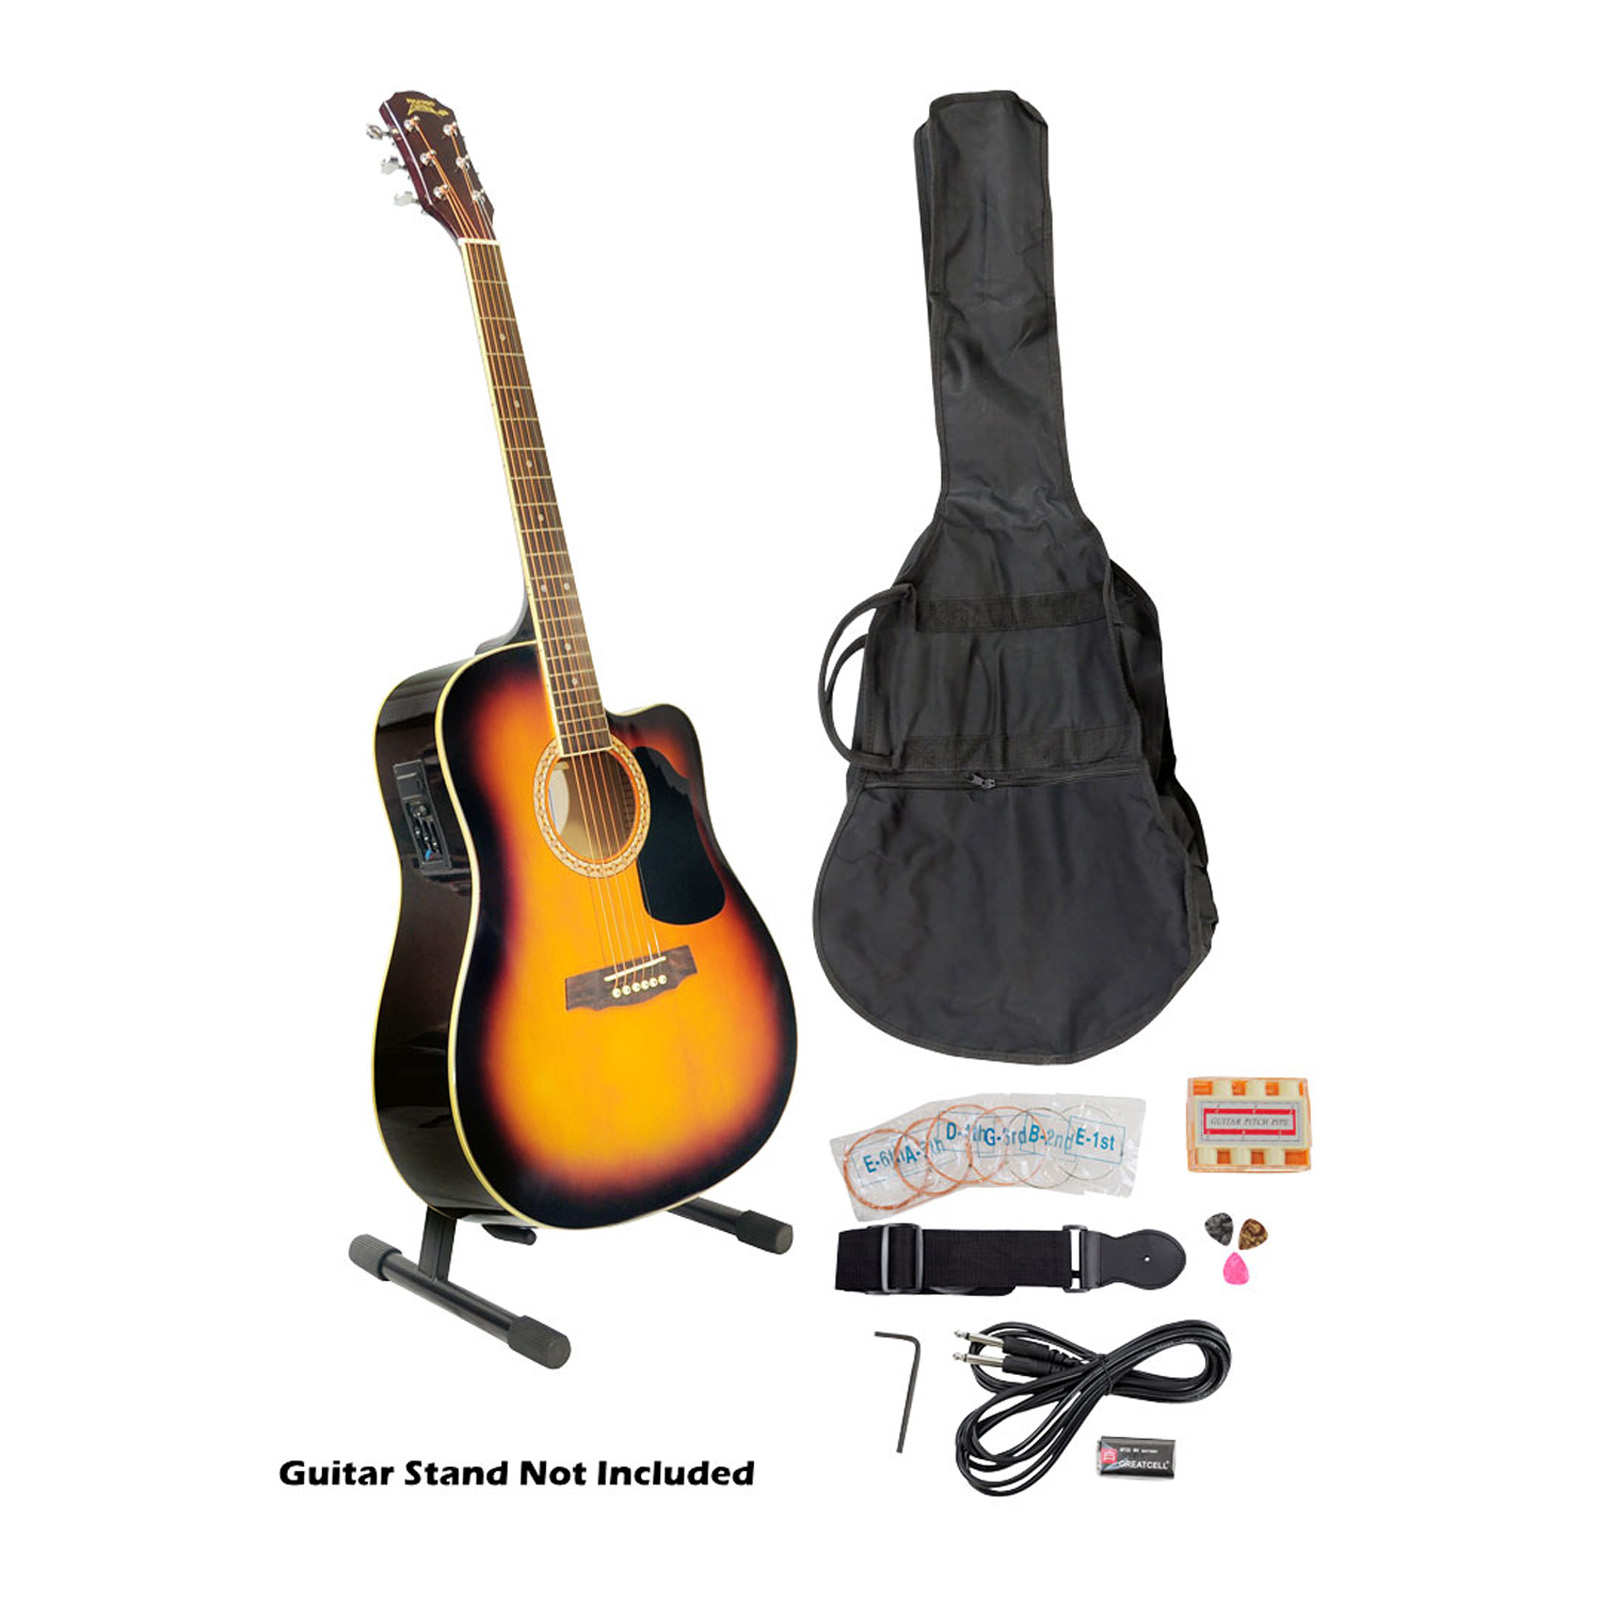 41'' Acoustic-Electric Guitar Package With Gig Bag, Strap, Picks, Tuner, and Strings... by Supplier Generic